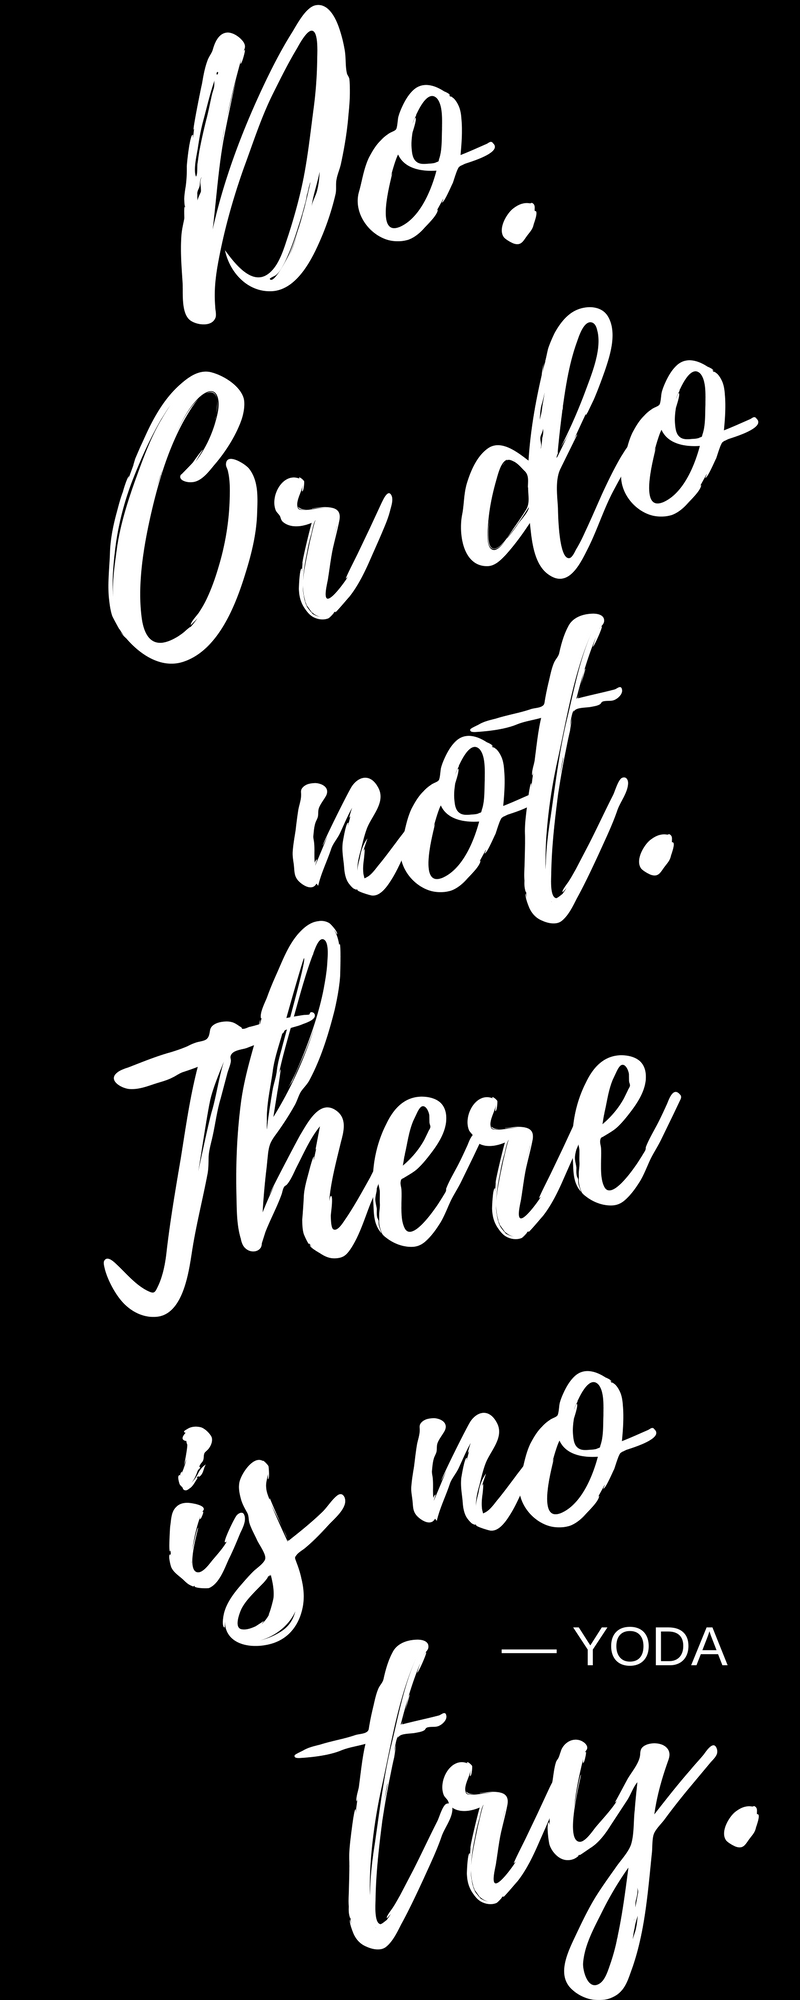 Do Or Do Not There Is No Try My Motto For The Year Inspirint Me To